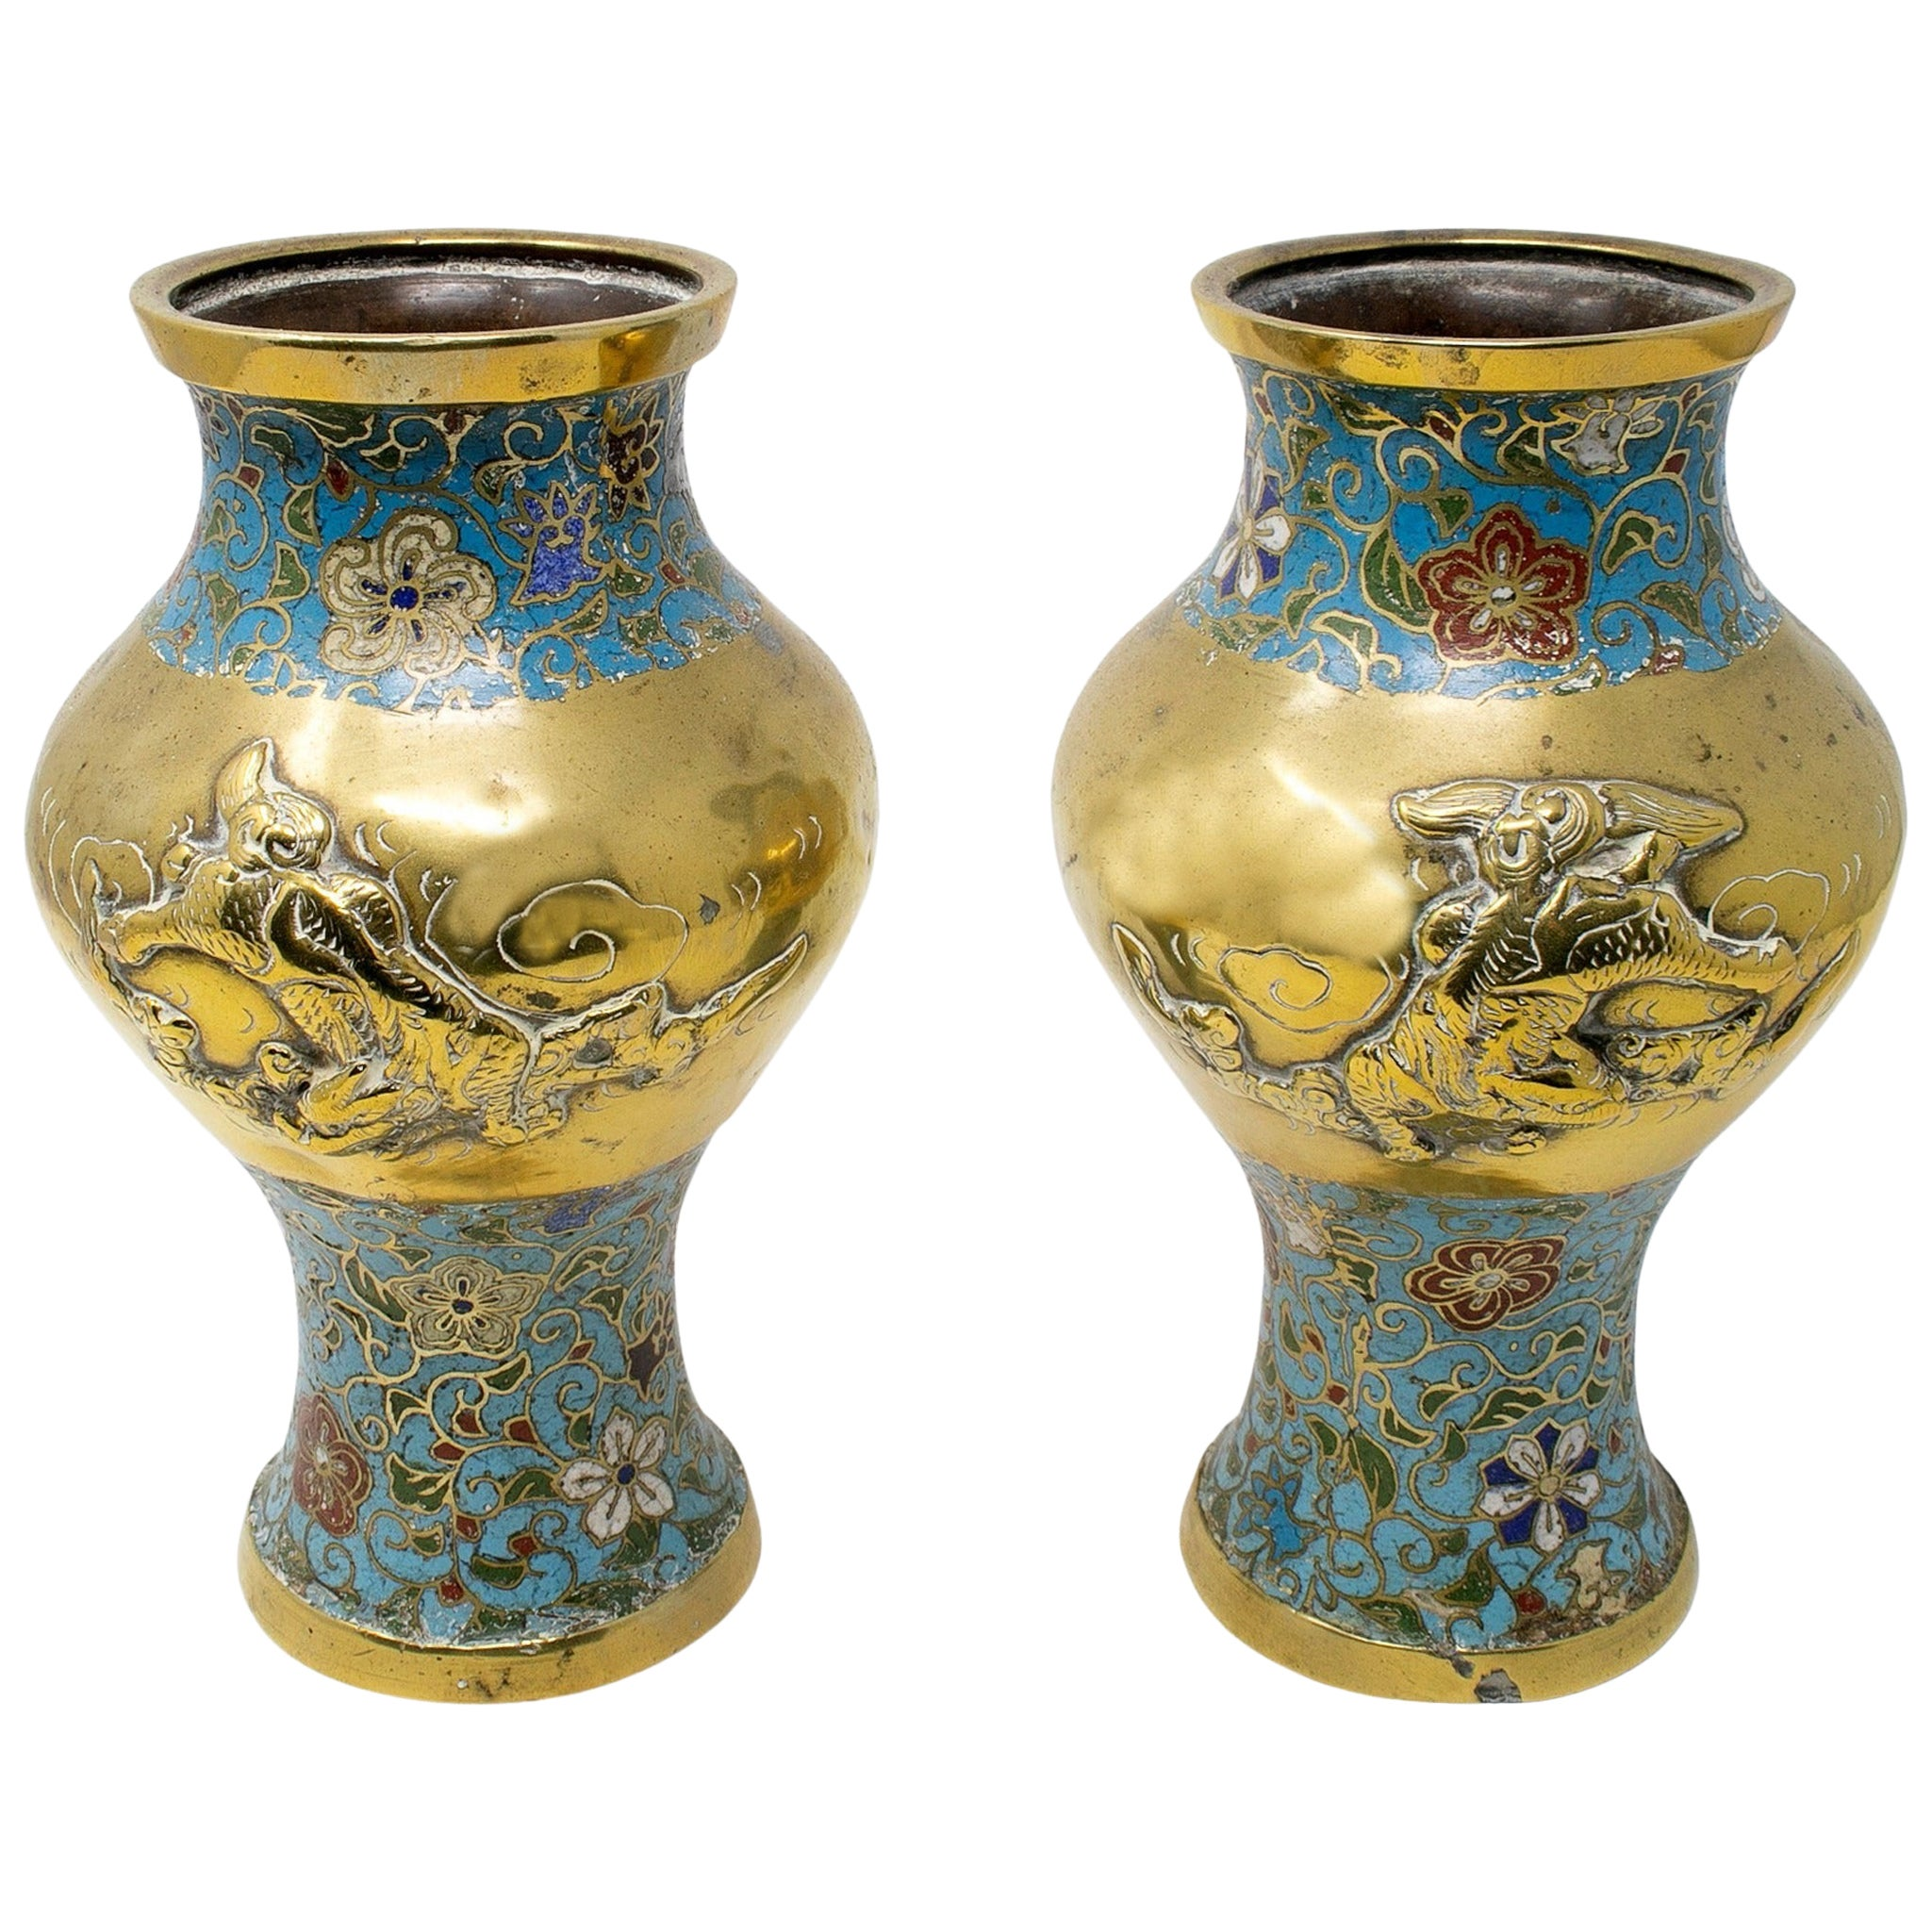 1950s Chinese Pair of Bronze Cloisonné Vases